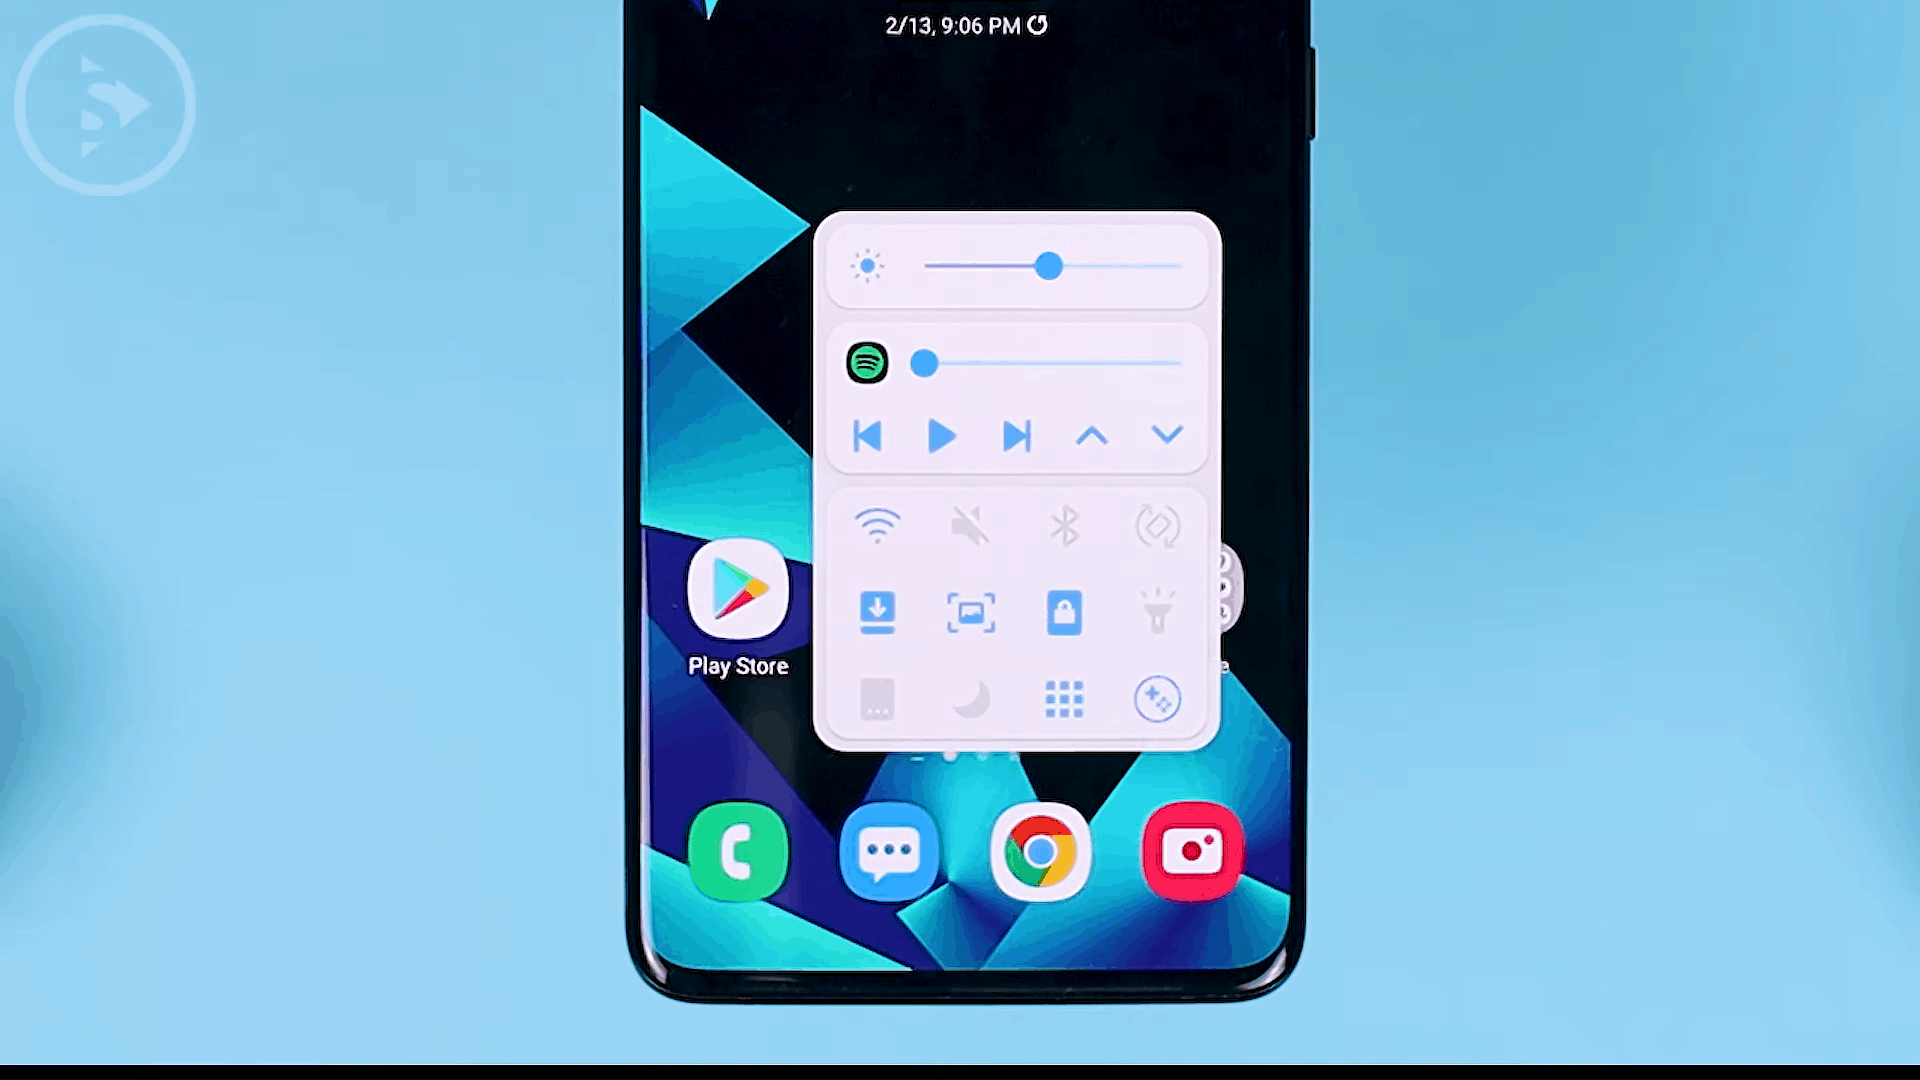 Straight Left - Quick Tools Long Swipe - The Latest One Hand Operation+ Feature in Update 2021 - A MANDATORY Application For Full Screen Gesture Users